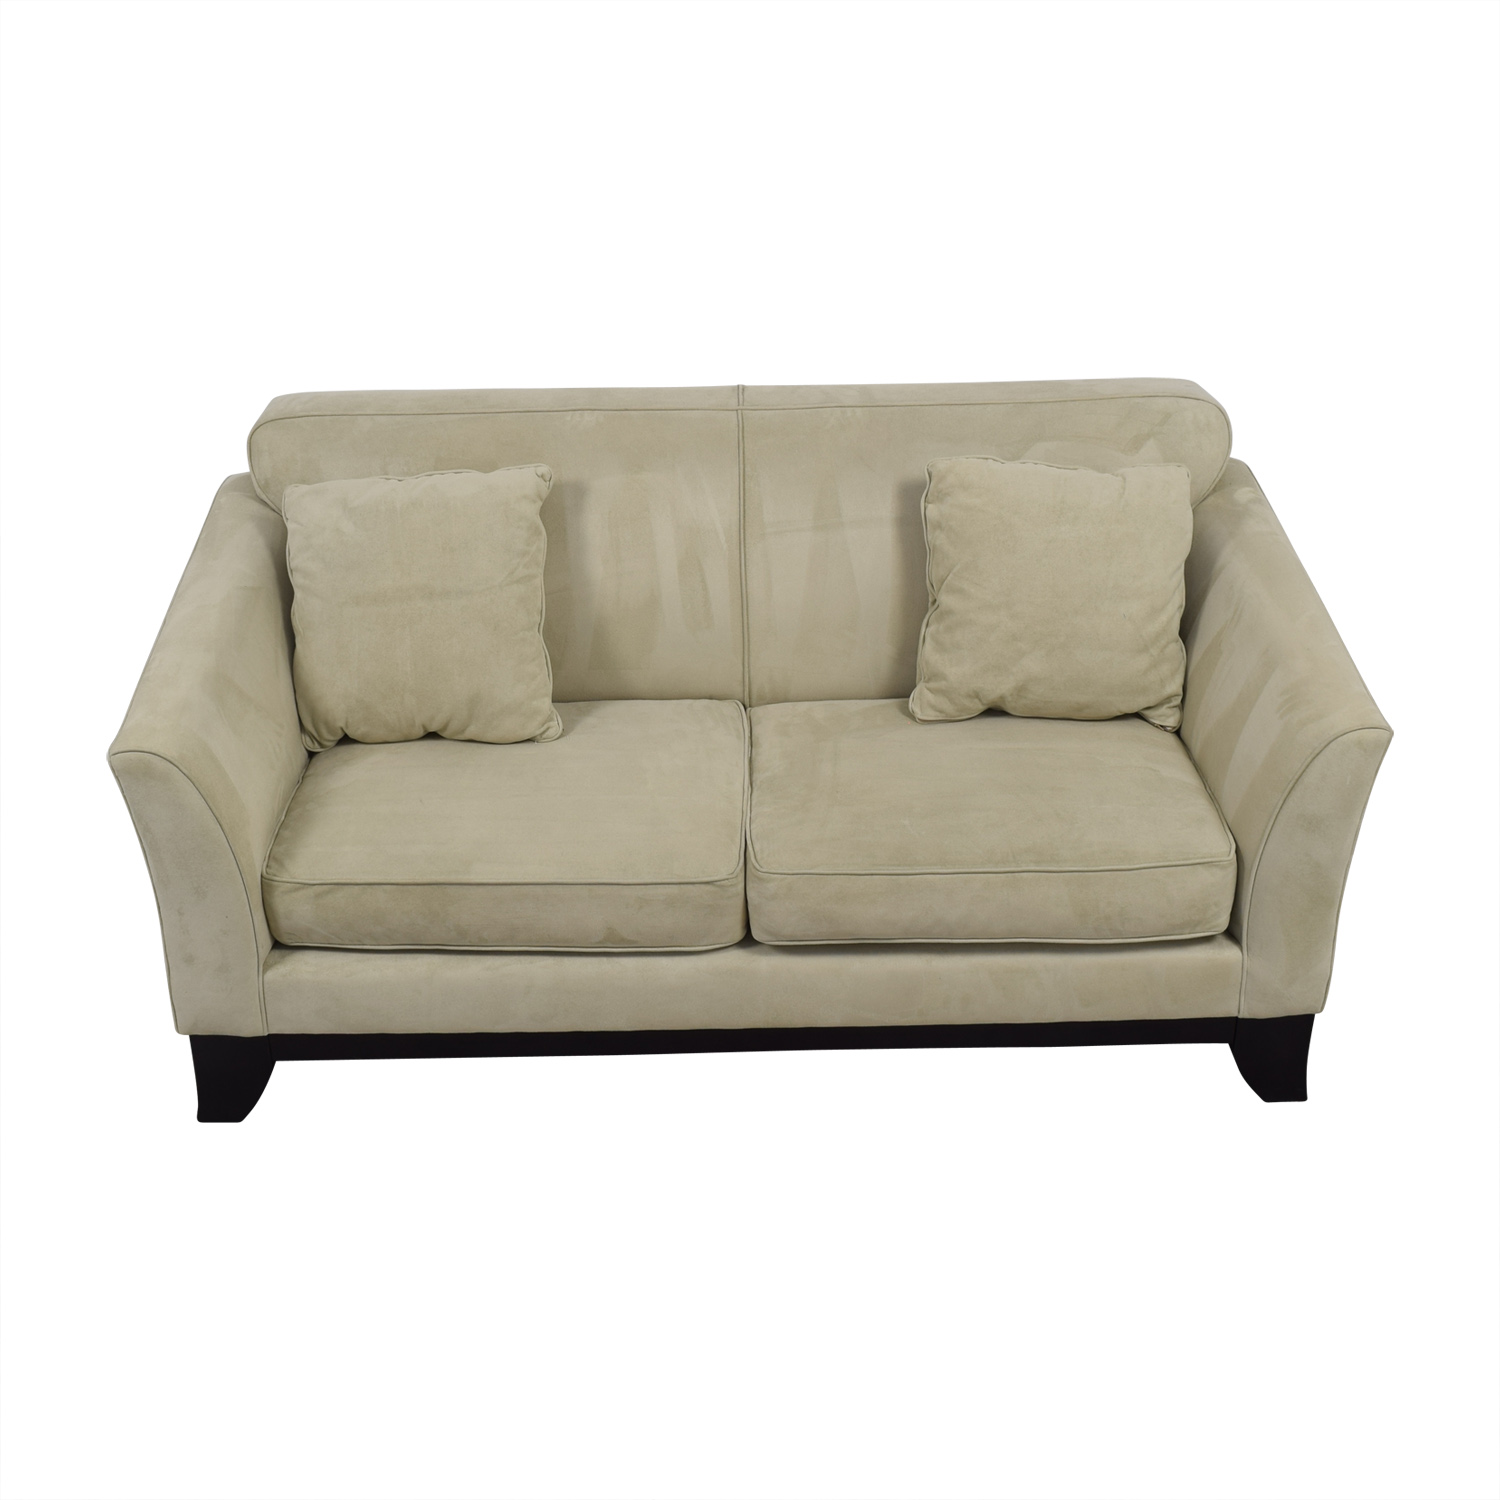 huffman koos loveseats chloe loveseat piece living collections sectional under furniture page room